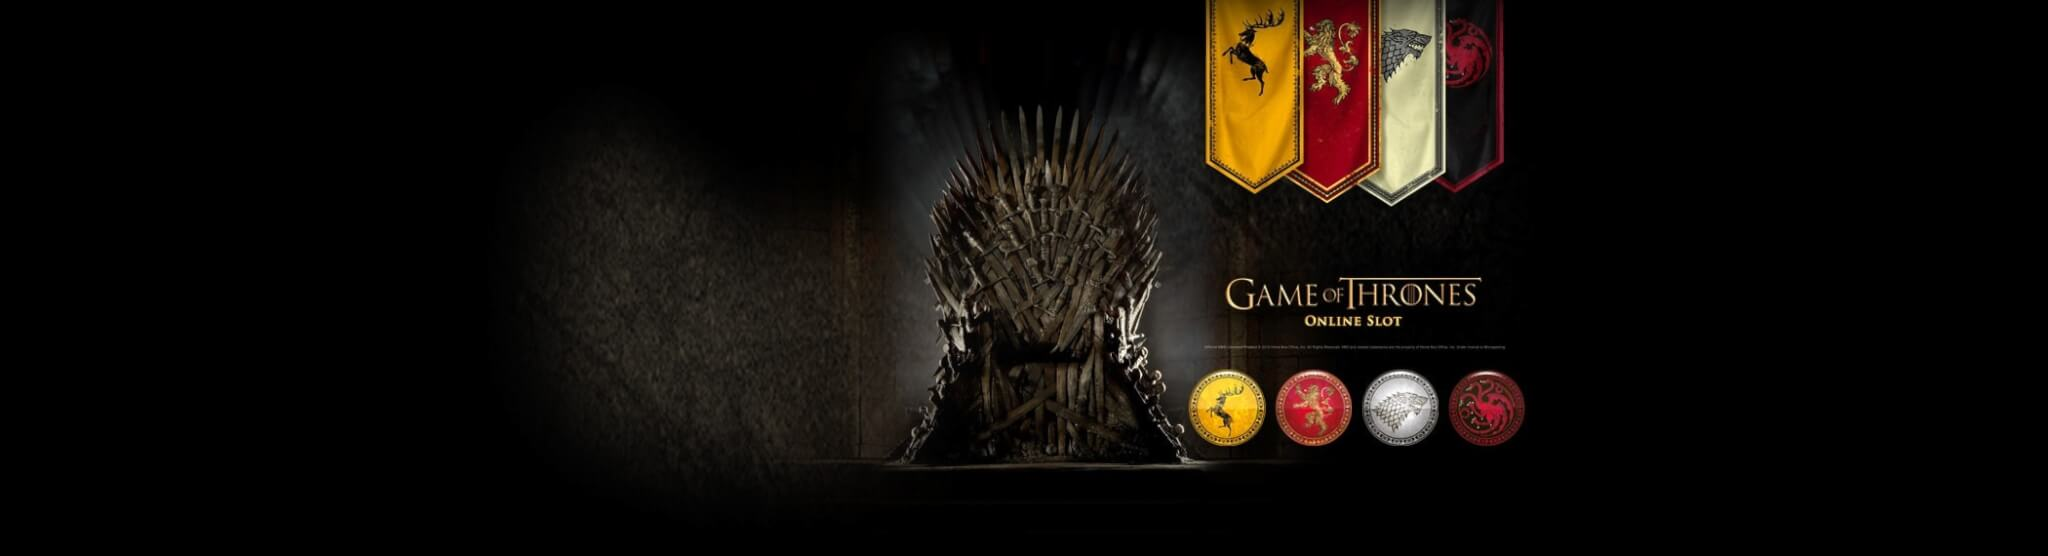 Game-of-Thrones-Online-Slot-Microgaming